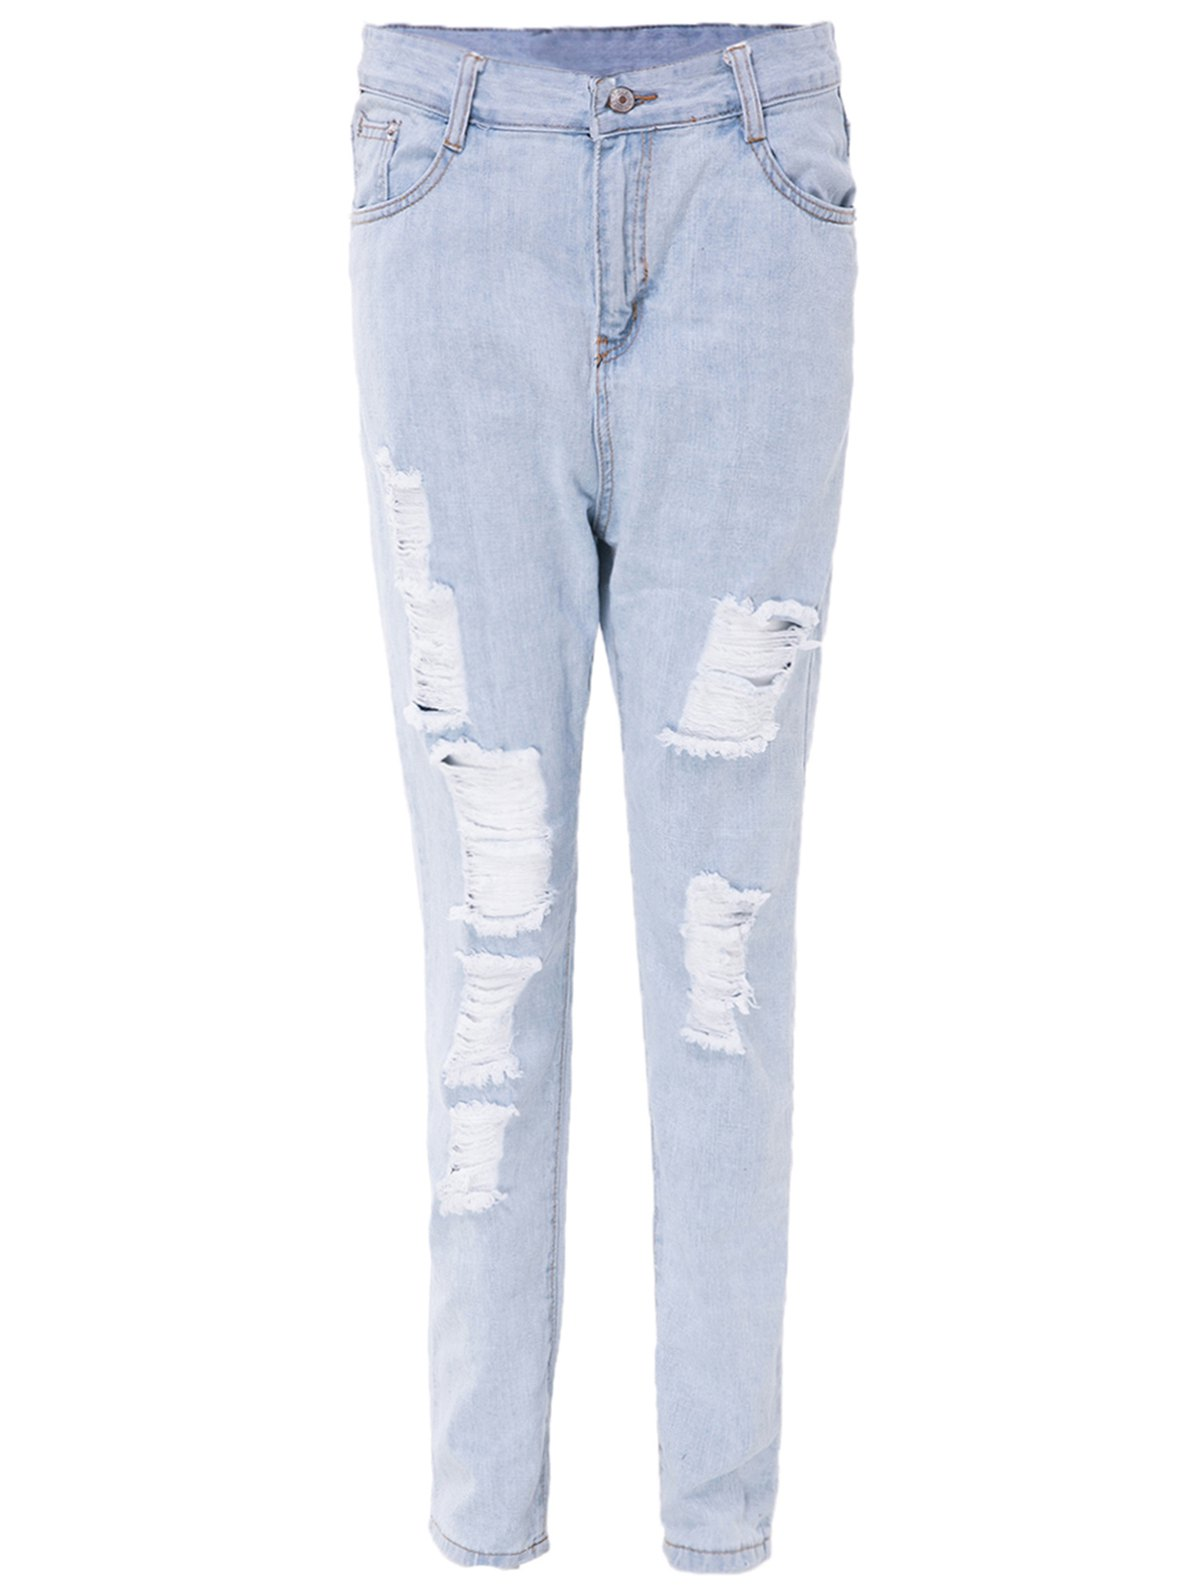 Fancy High Waisted Distressed Skinny Jeans